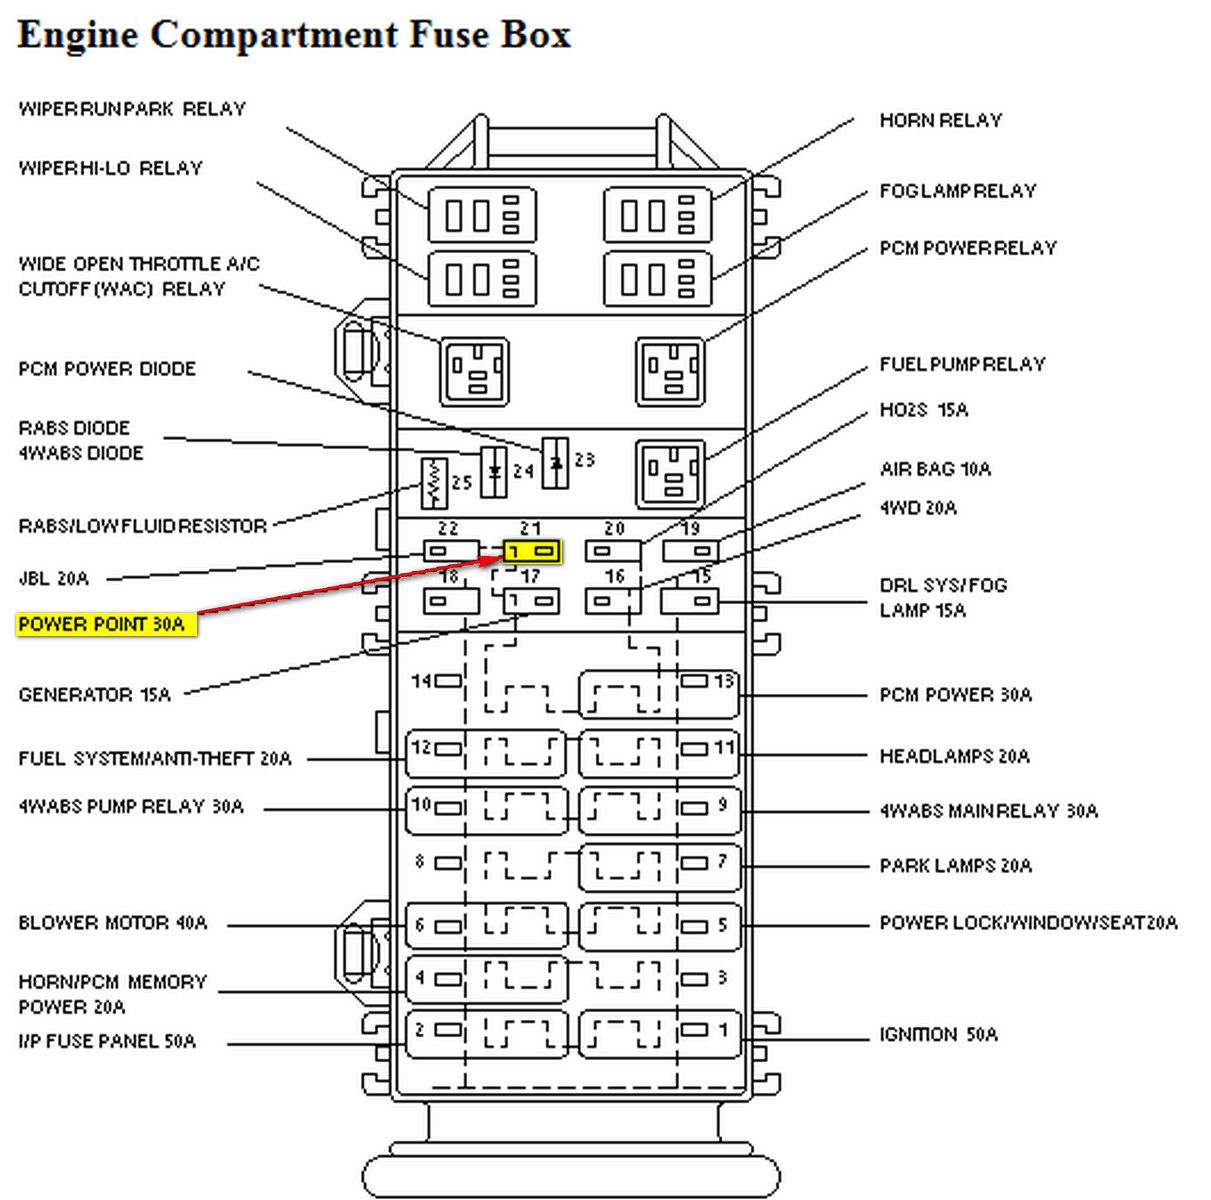 1997 Ranger Fuse Box Control Wiring Diagram Cole Hersee 956 9100 Switch 4x4 Another Blog About U2022 Rh Ok2 Infoservice Ru